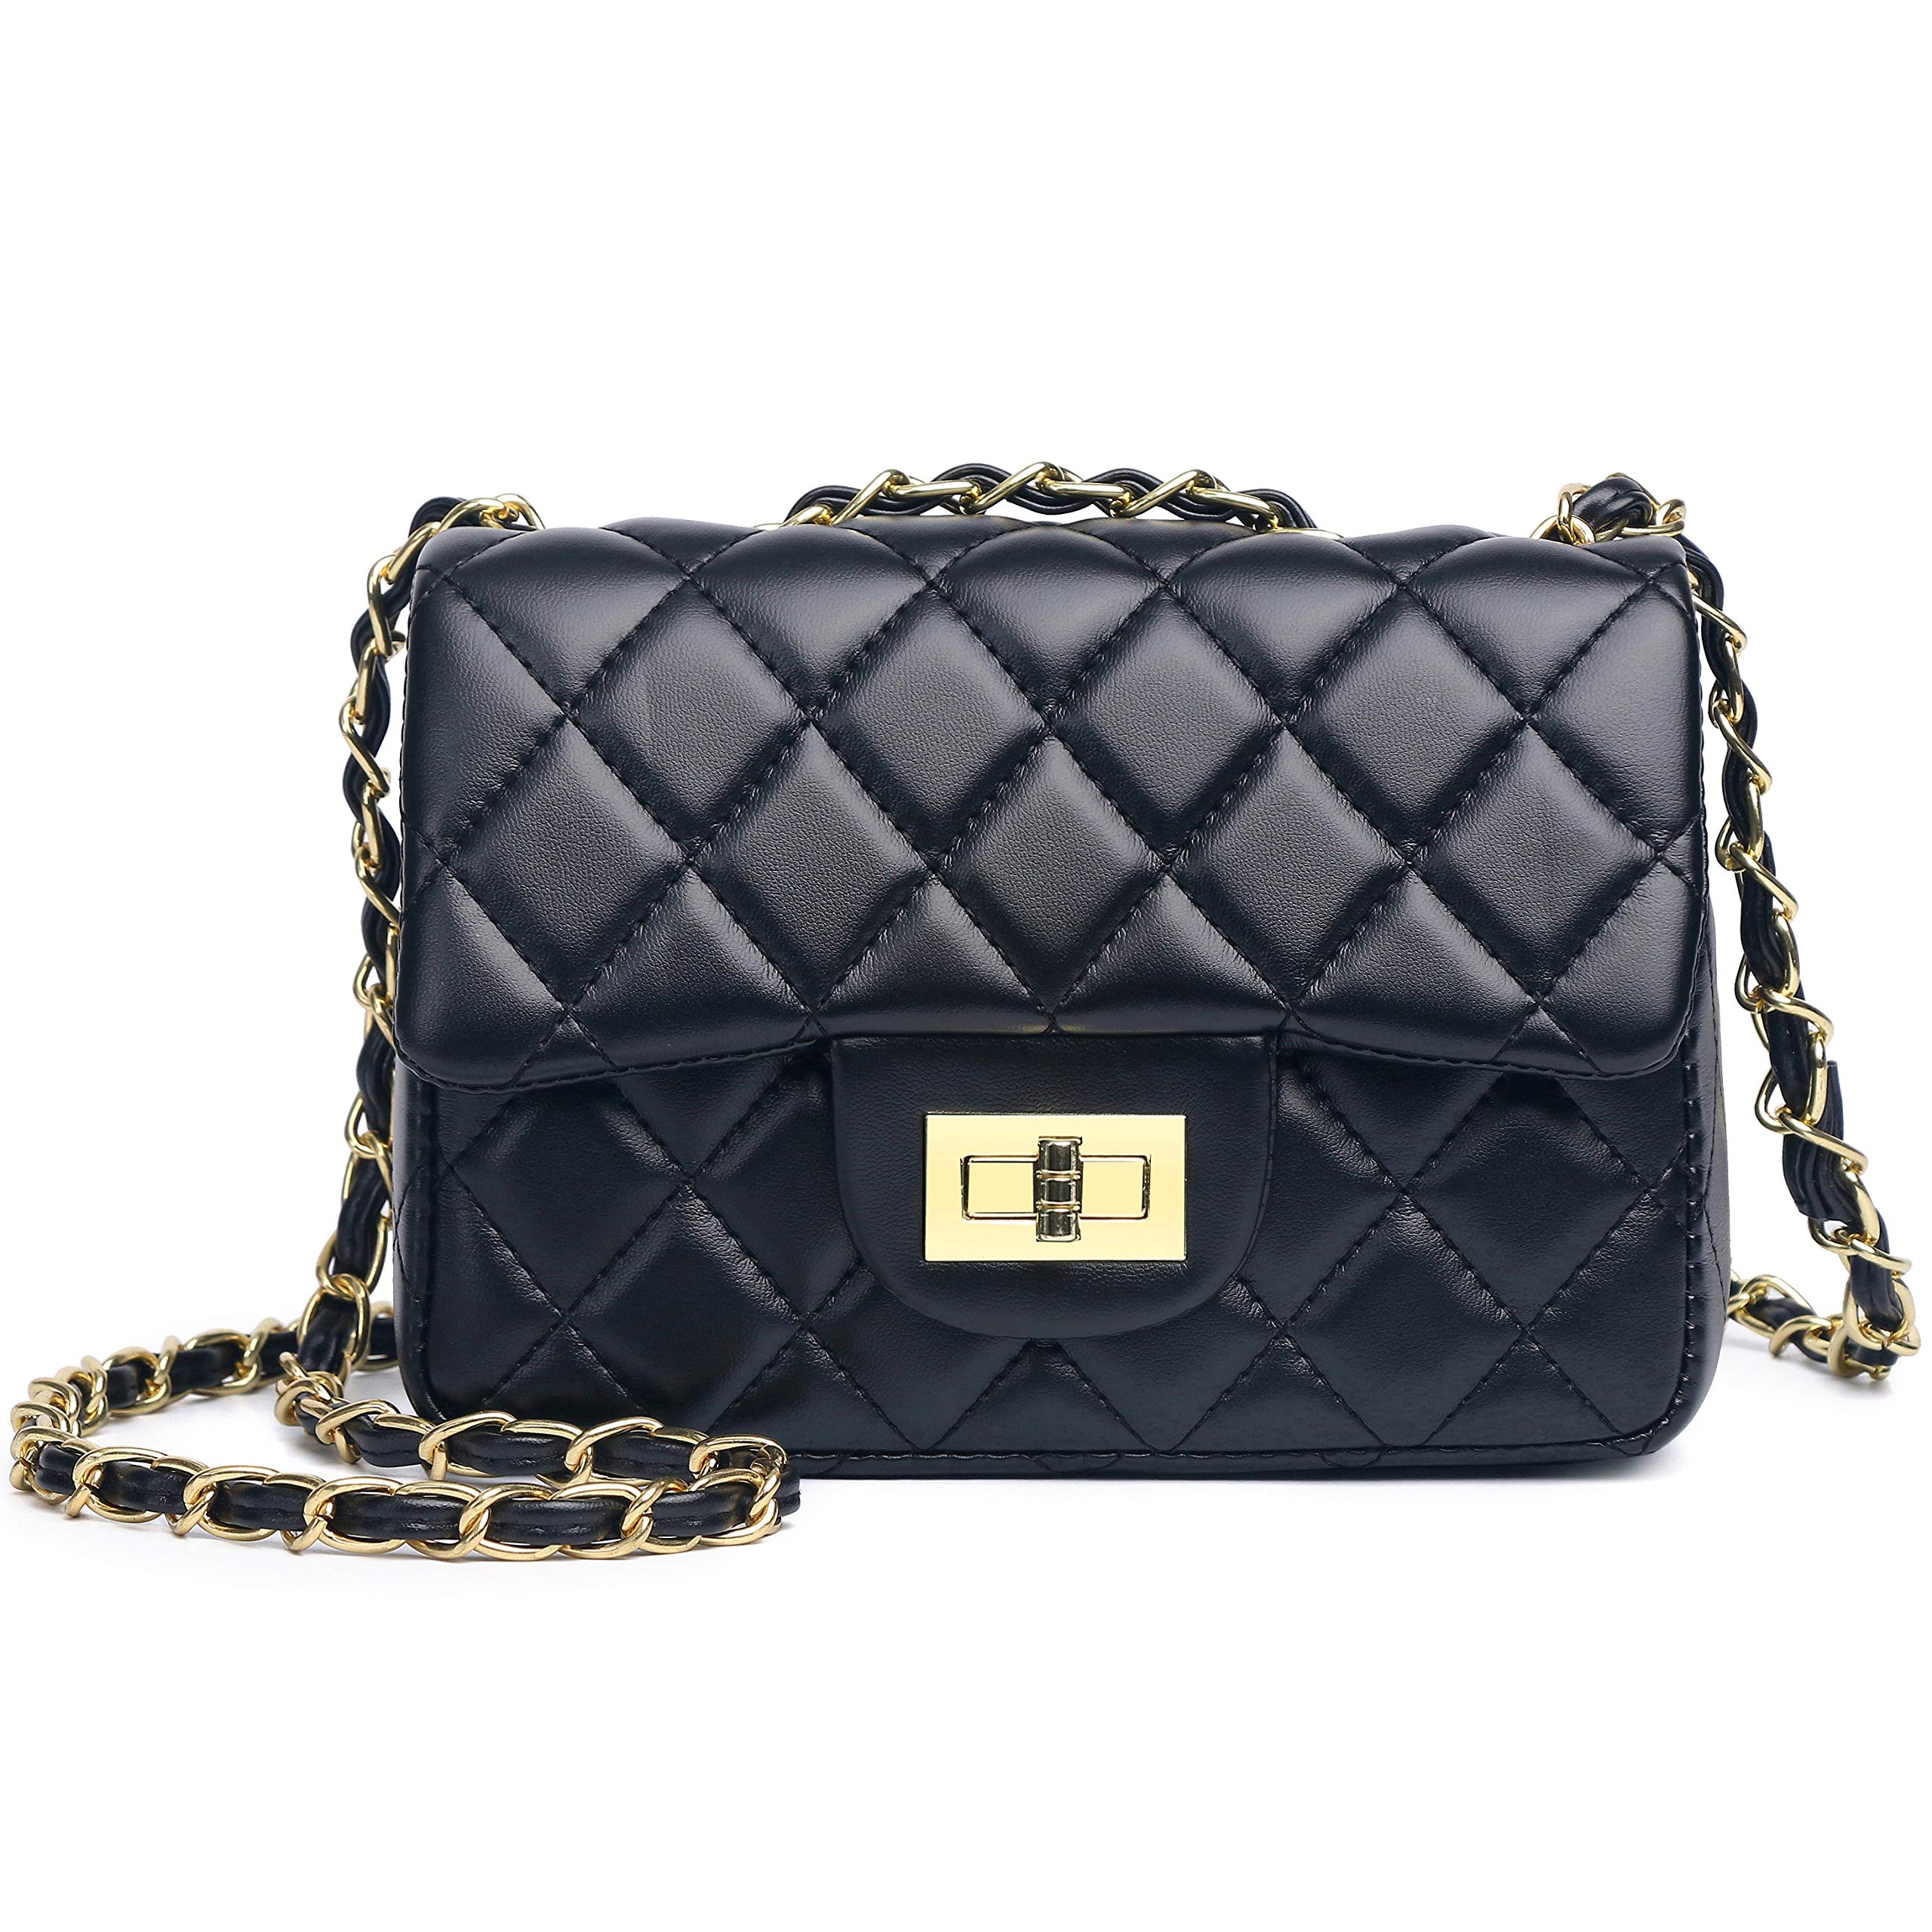 Volcanic Rock Women's Quilted PU Leather Cross-body Bag Girls Purse and Handbags with Chain Small Messenger Bag (919 Black)